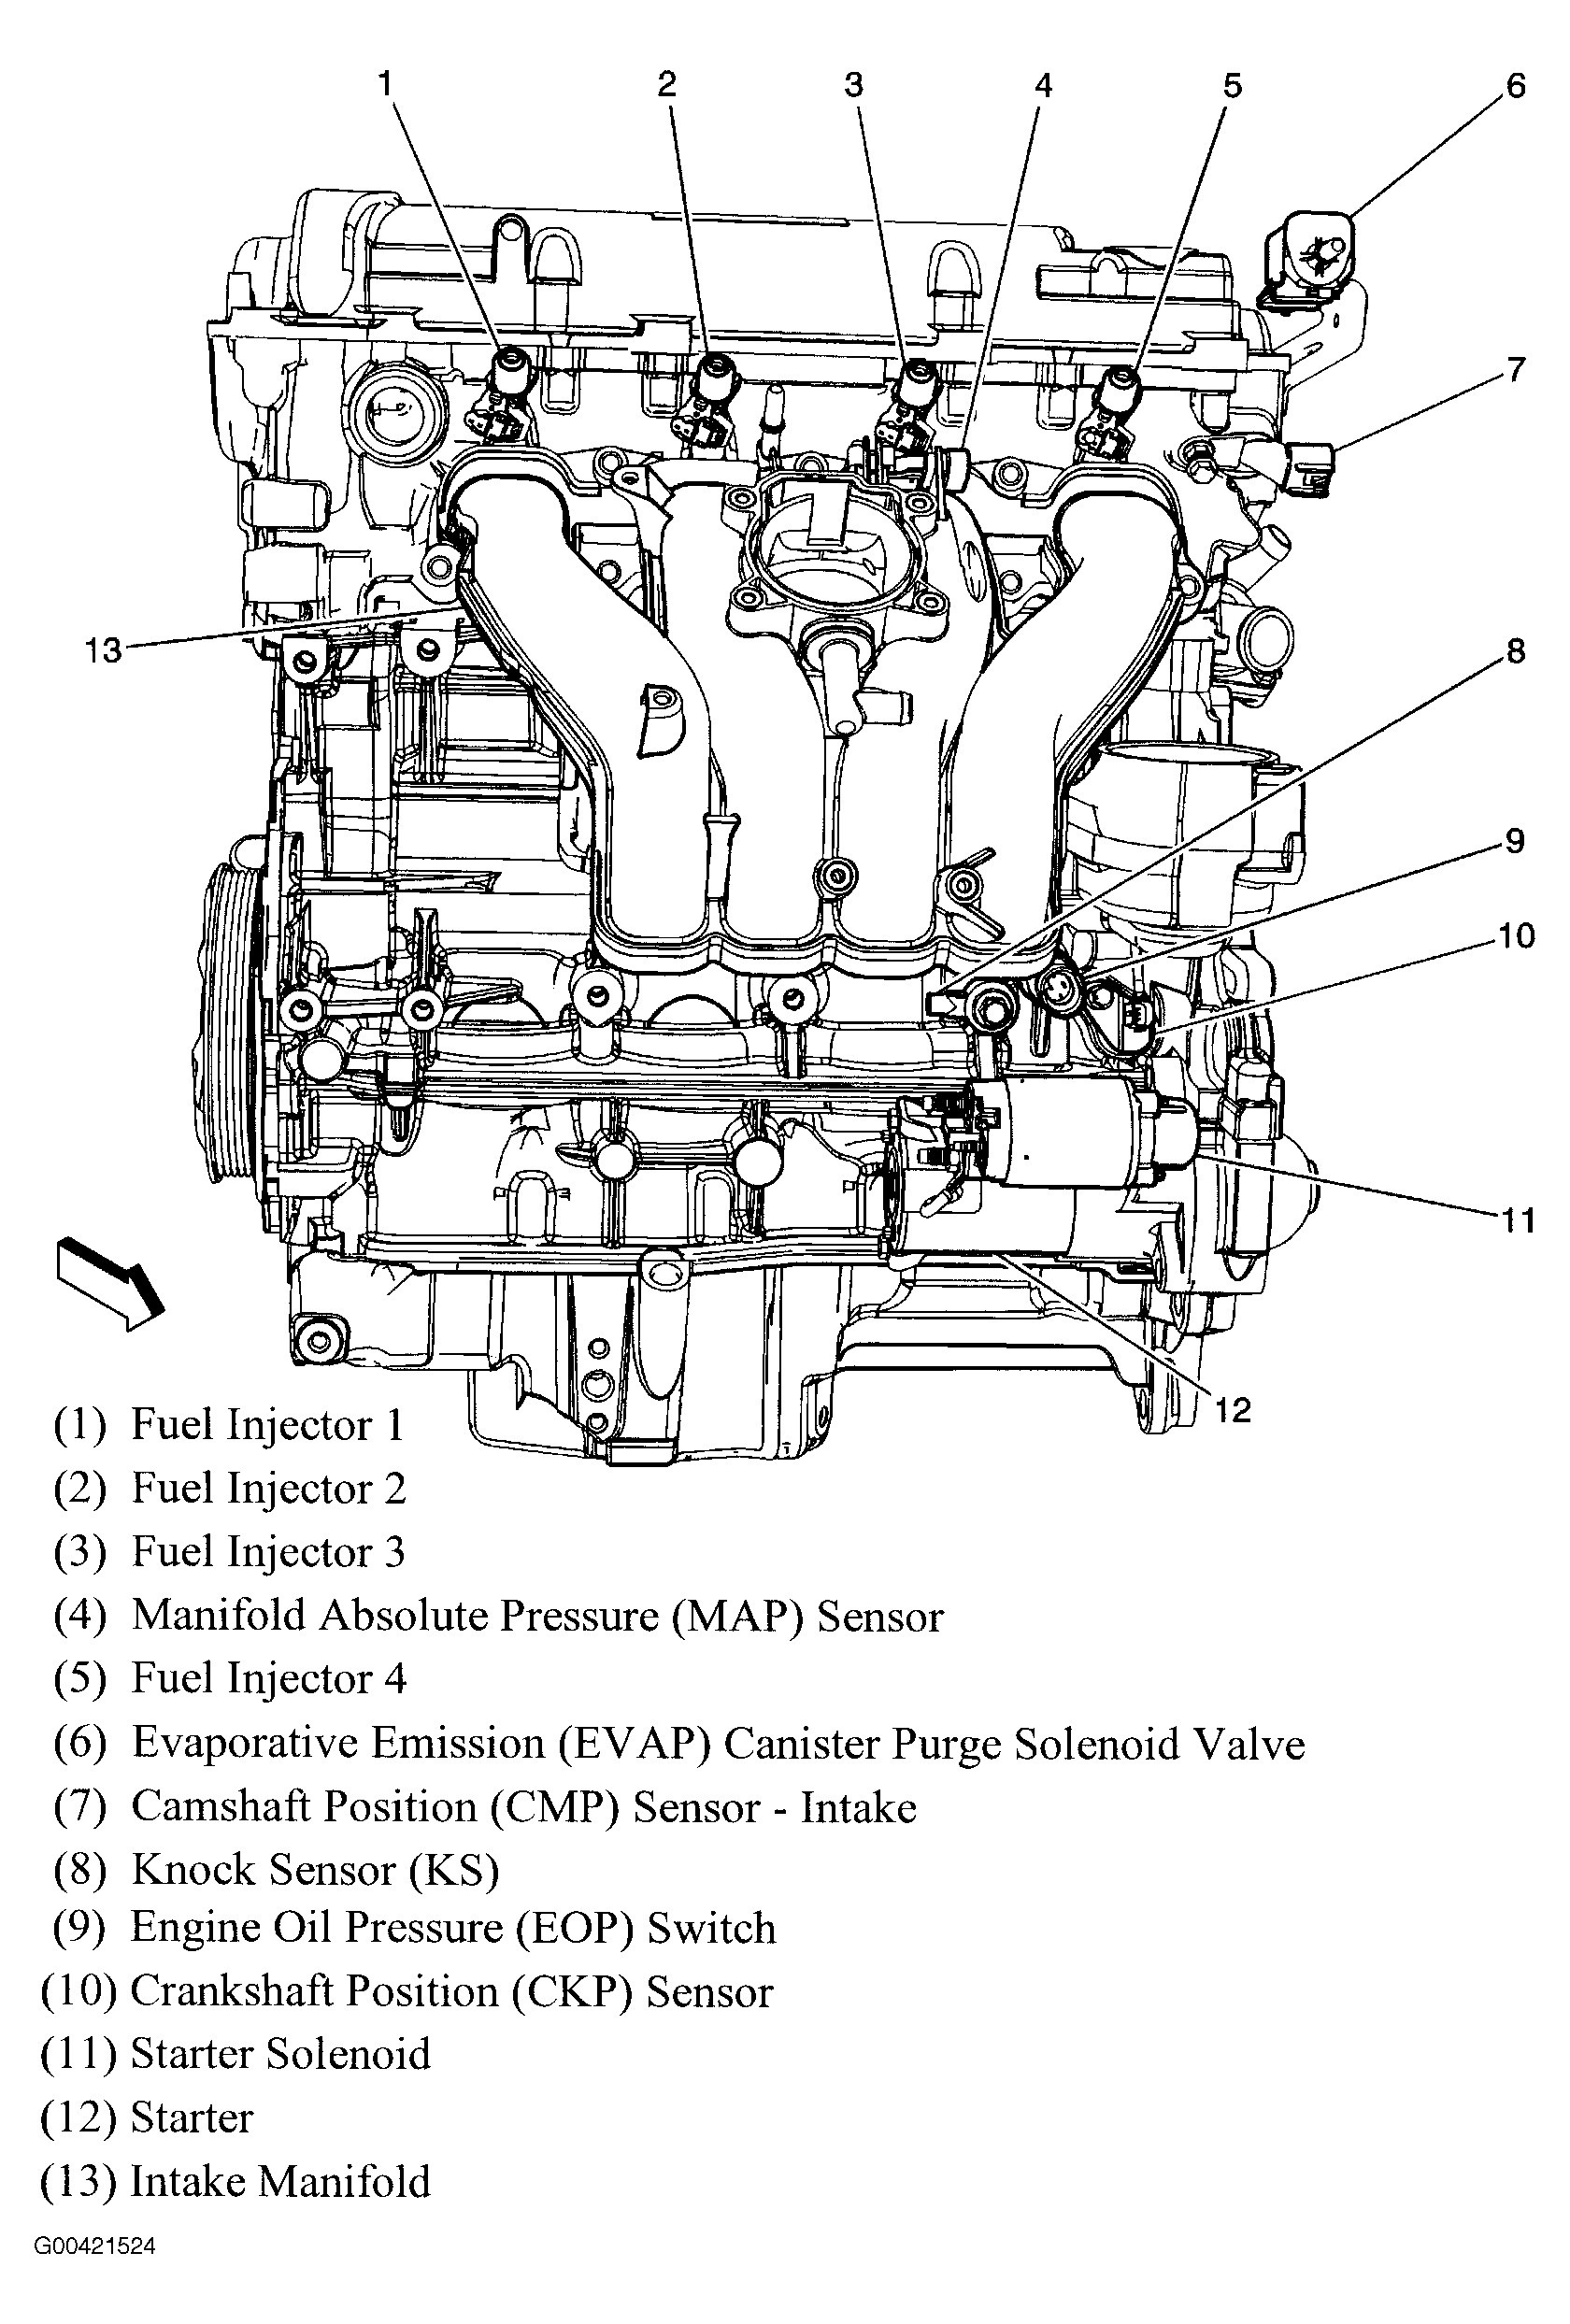 hight resolution of 2005 suburban engine diagram wiring diagram datasource 2005 chevy express engine diagram wiring diagram used 2005